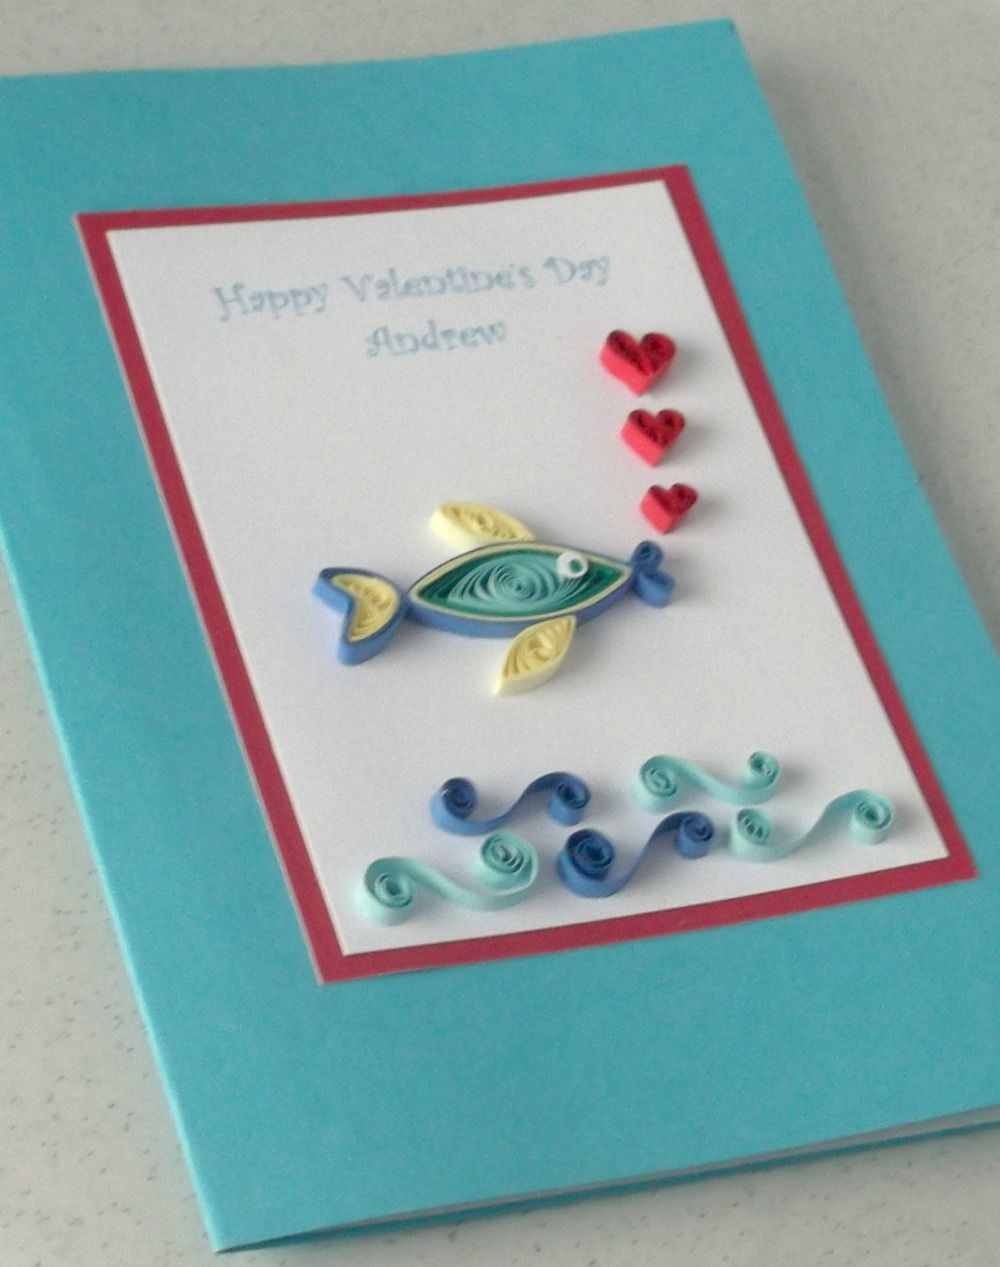 Paper Daisy Quilling Pinterest – Cool Valentines Cards to Make